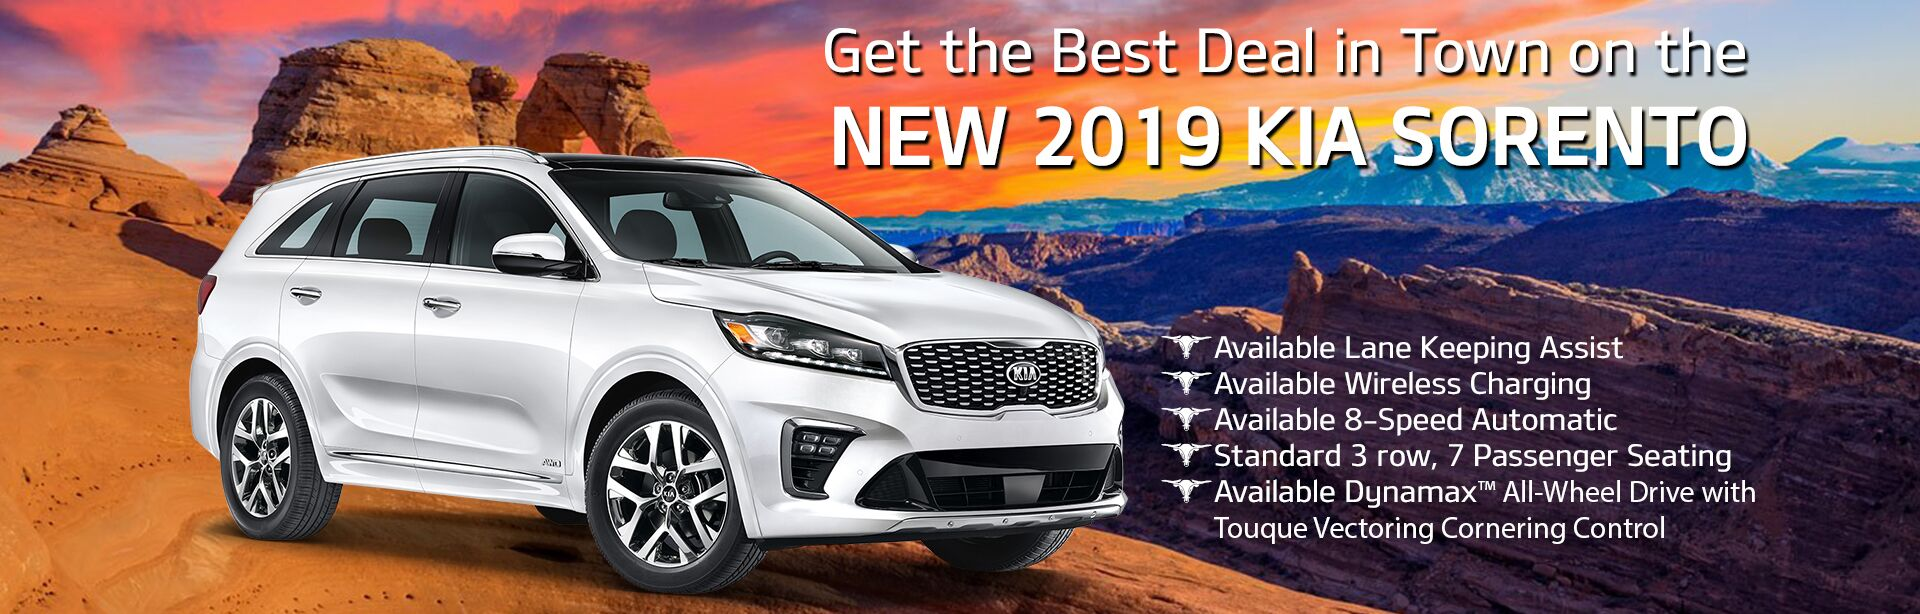 2019 Sorento Best Deal in Town